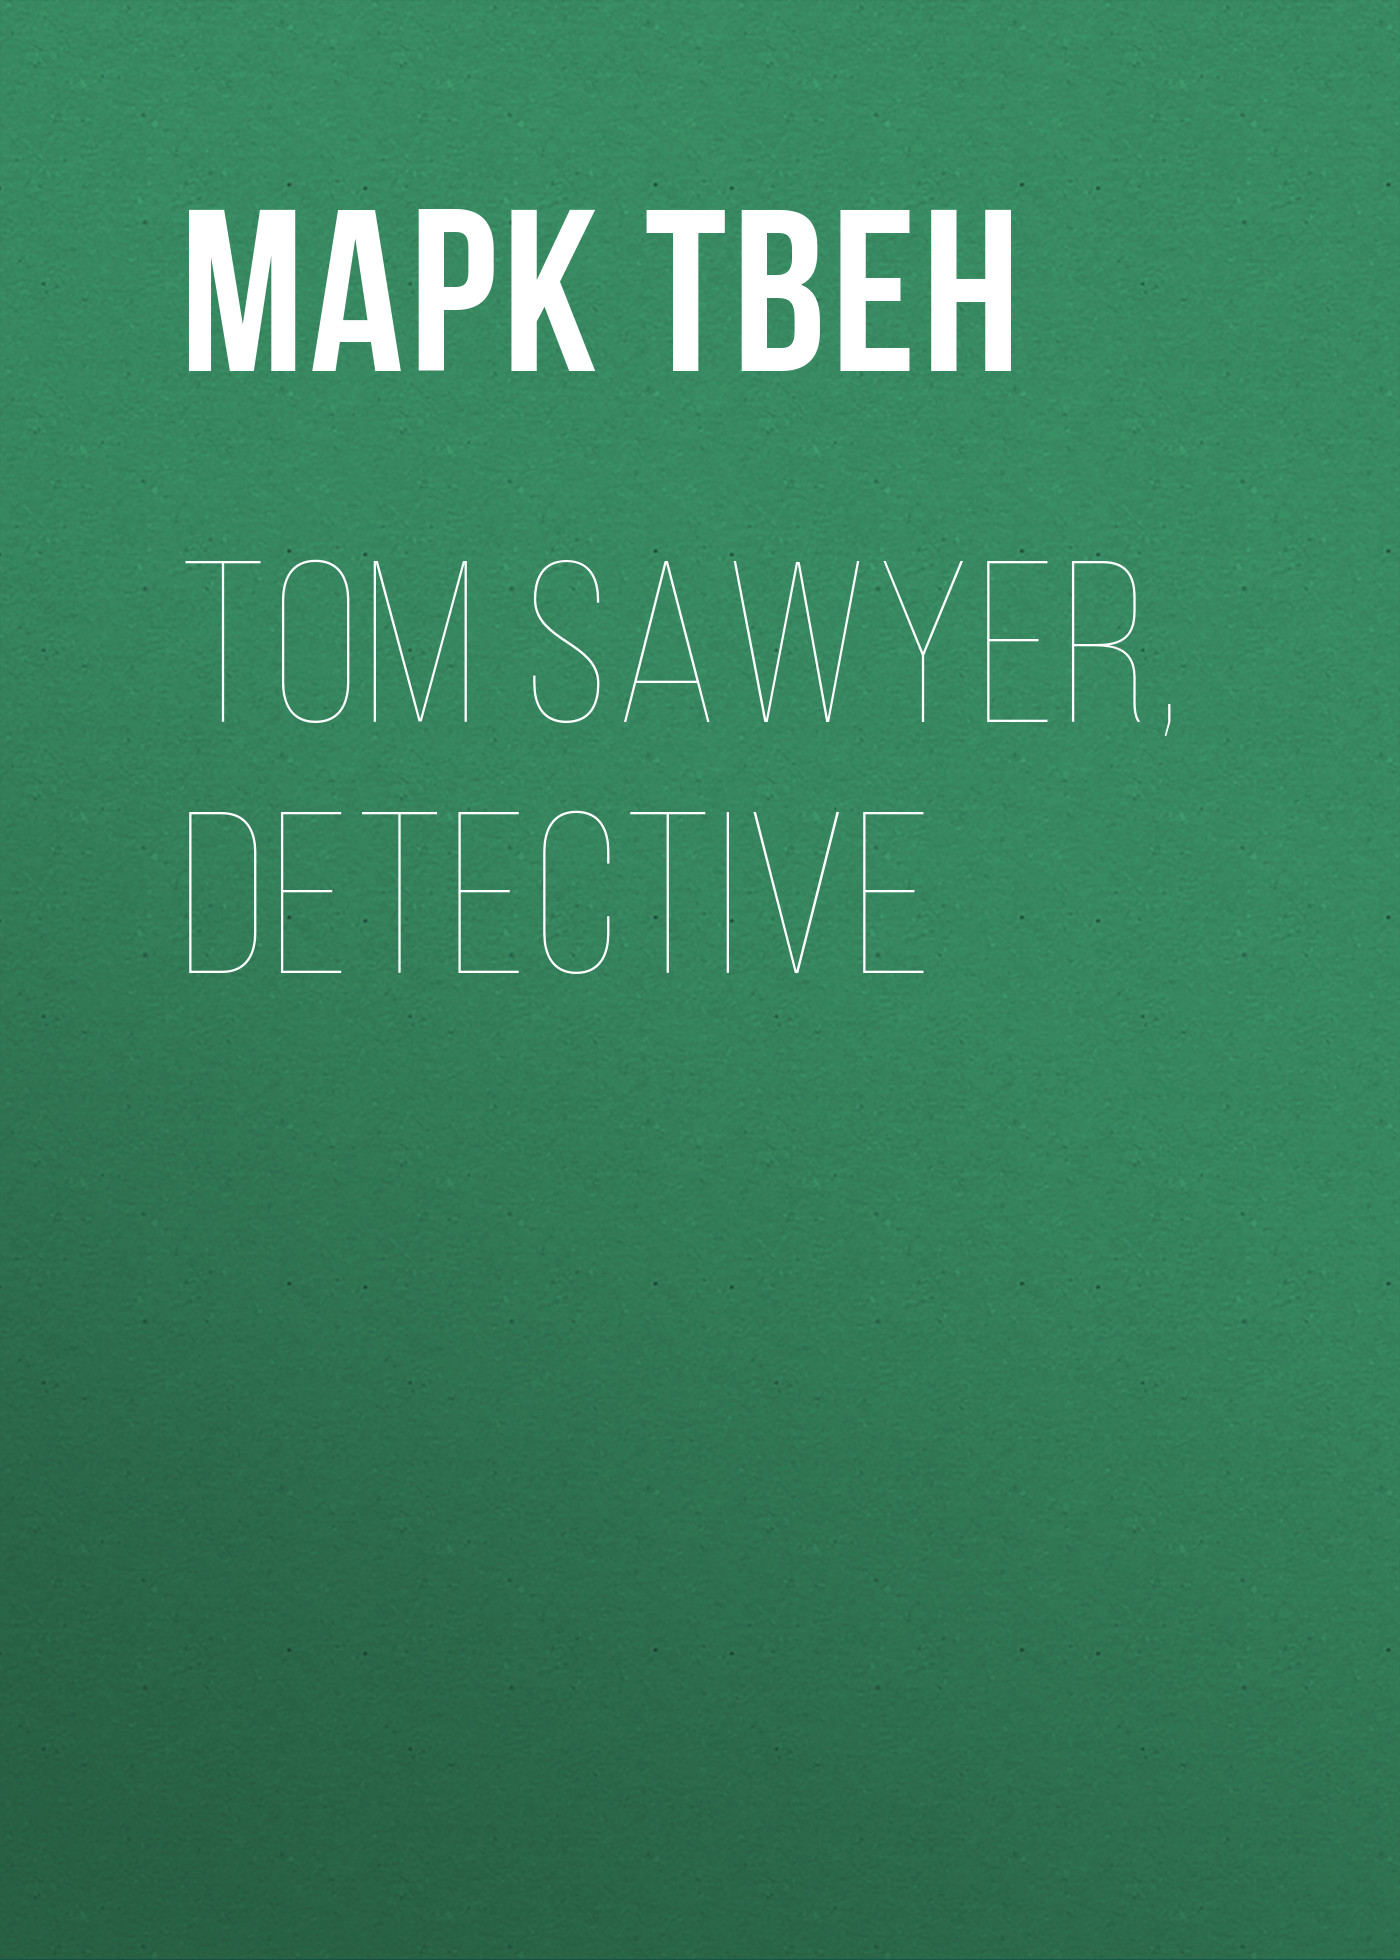 Марк Твен Tom Sawyer, Detective марк твен adventures of tom sawyer